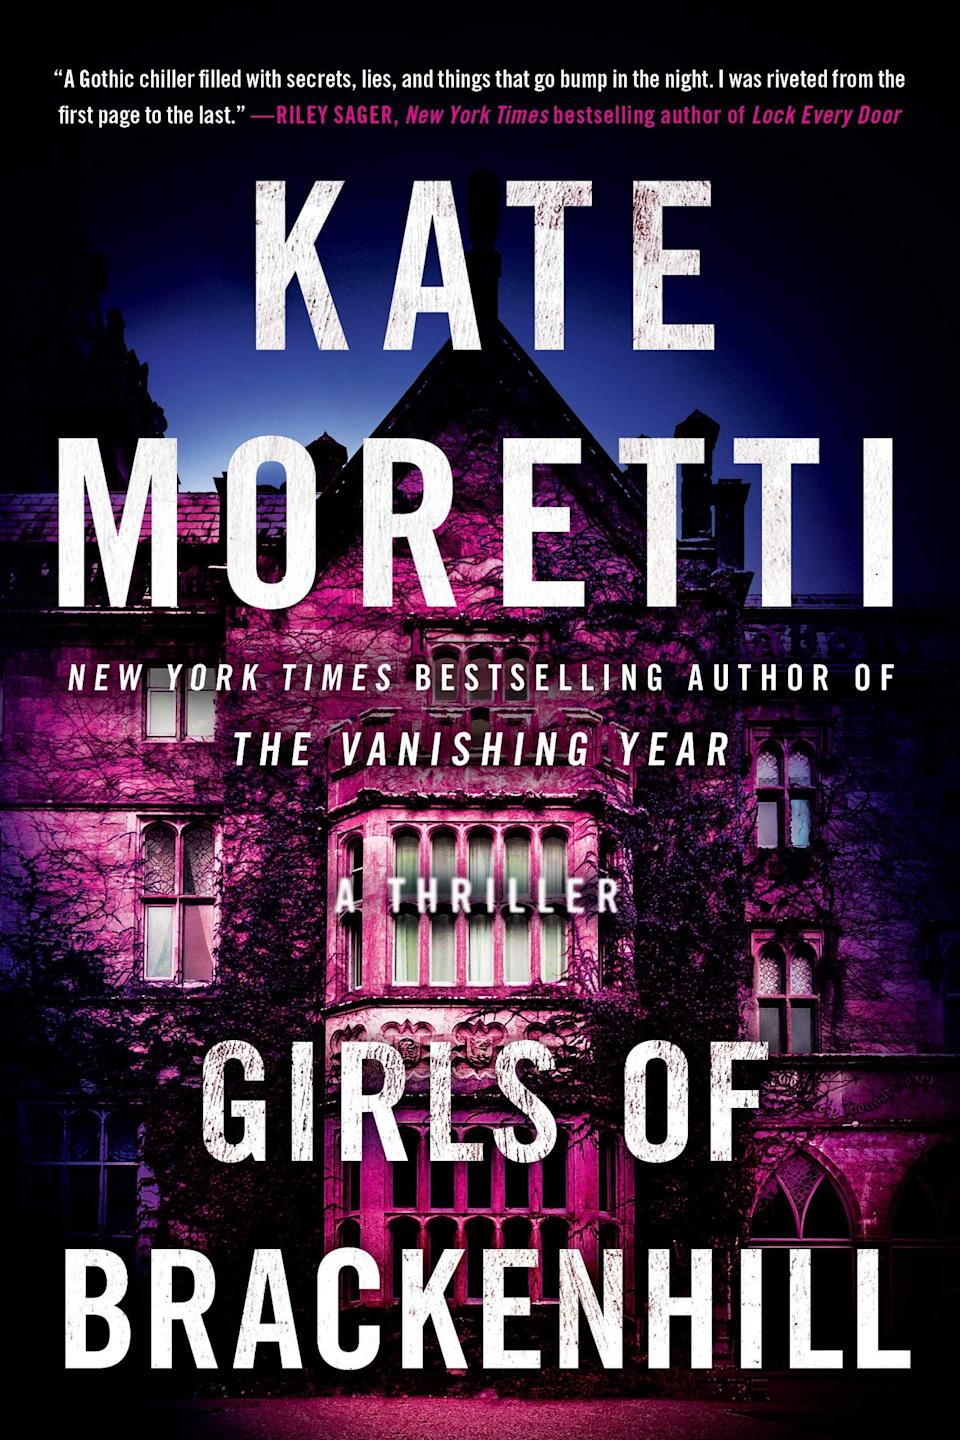 <p>Full of Gothic moodiness and dark family secrets, <span><strong>Girls of Brackenhill</strong></span> by Kate Moretti is a thoroughly chilling story of one woman's haunted past. After her aunt's sudden death, Hannah Maloney returns to her family's Catskills castle for the first time since her sister's disappearance 17 years ago, only to find that the ghosts of the past are impossible to escape. </p> <p><em>Out Nov. 1</em></p>